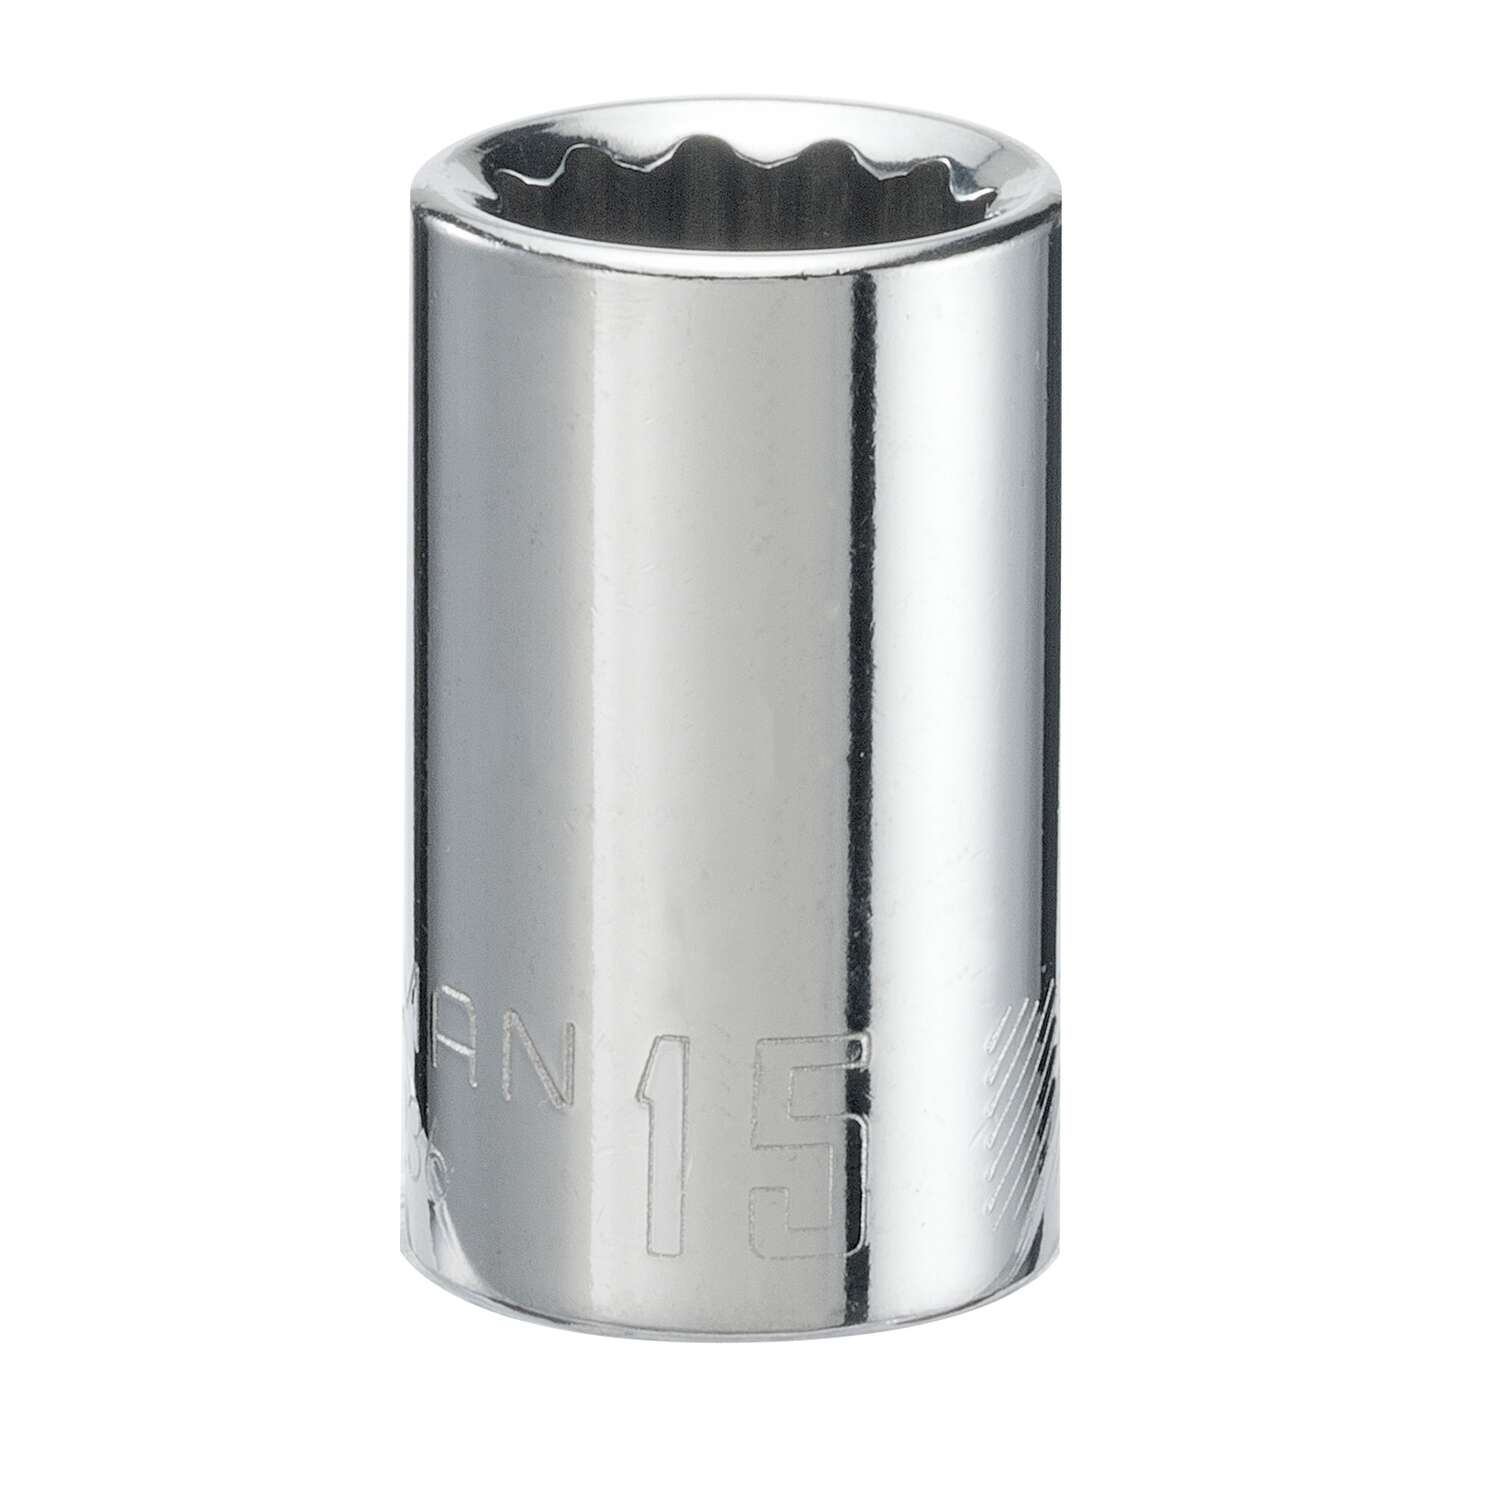 Craftsman  15 mm  x 1/2 in. drive  12 Point Shallow Socket  1 pc.